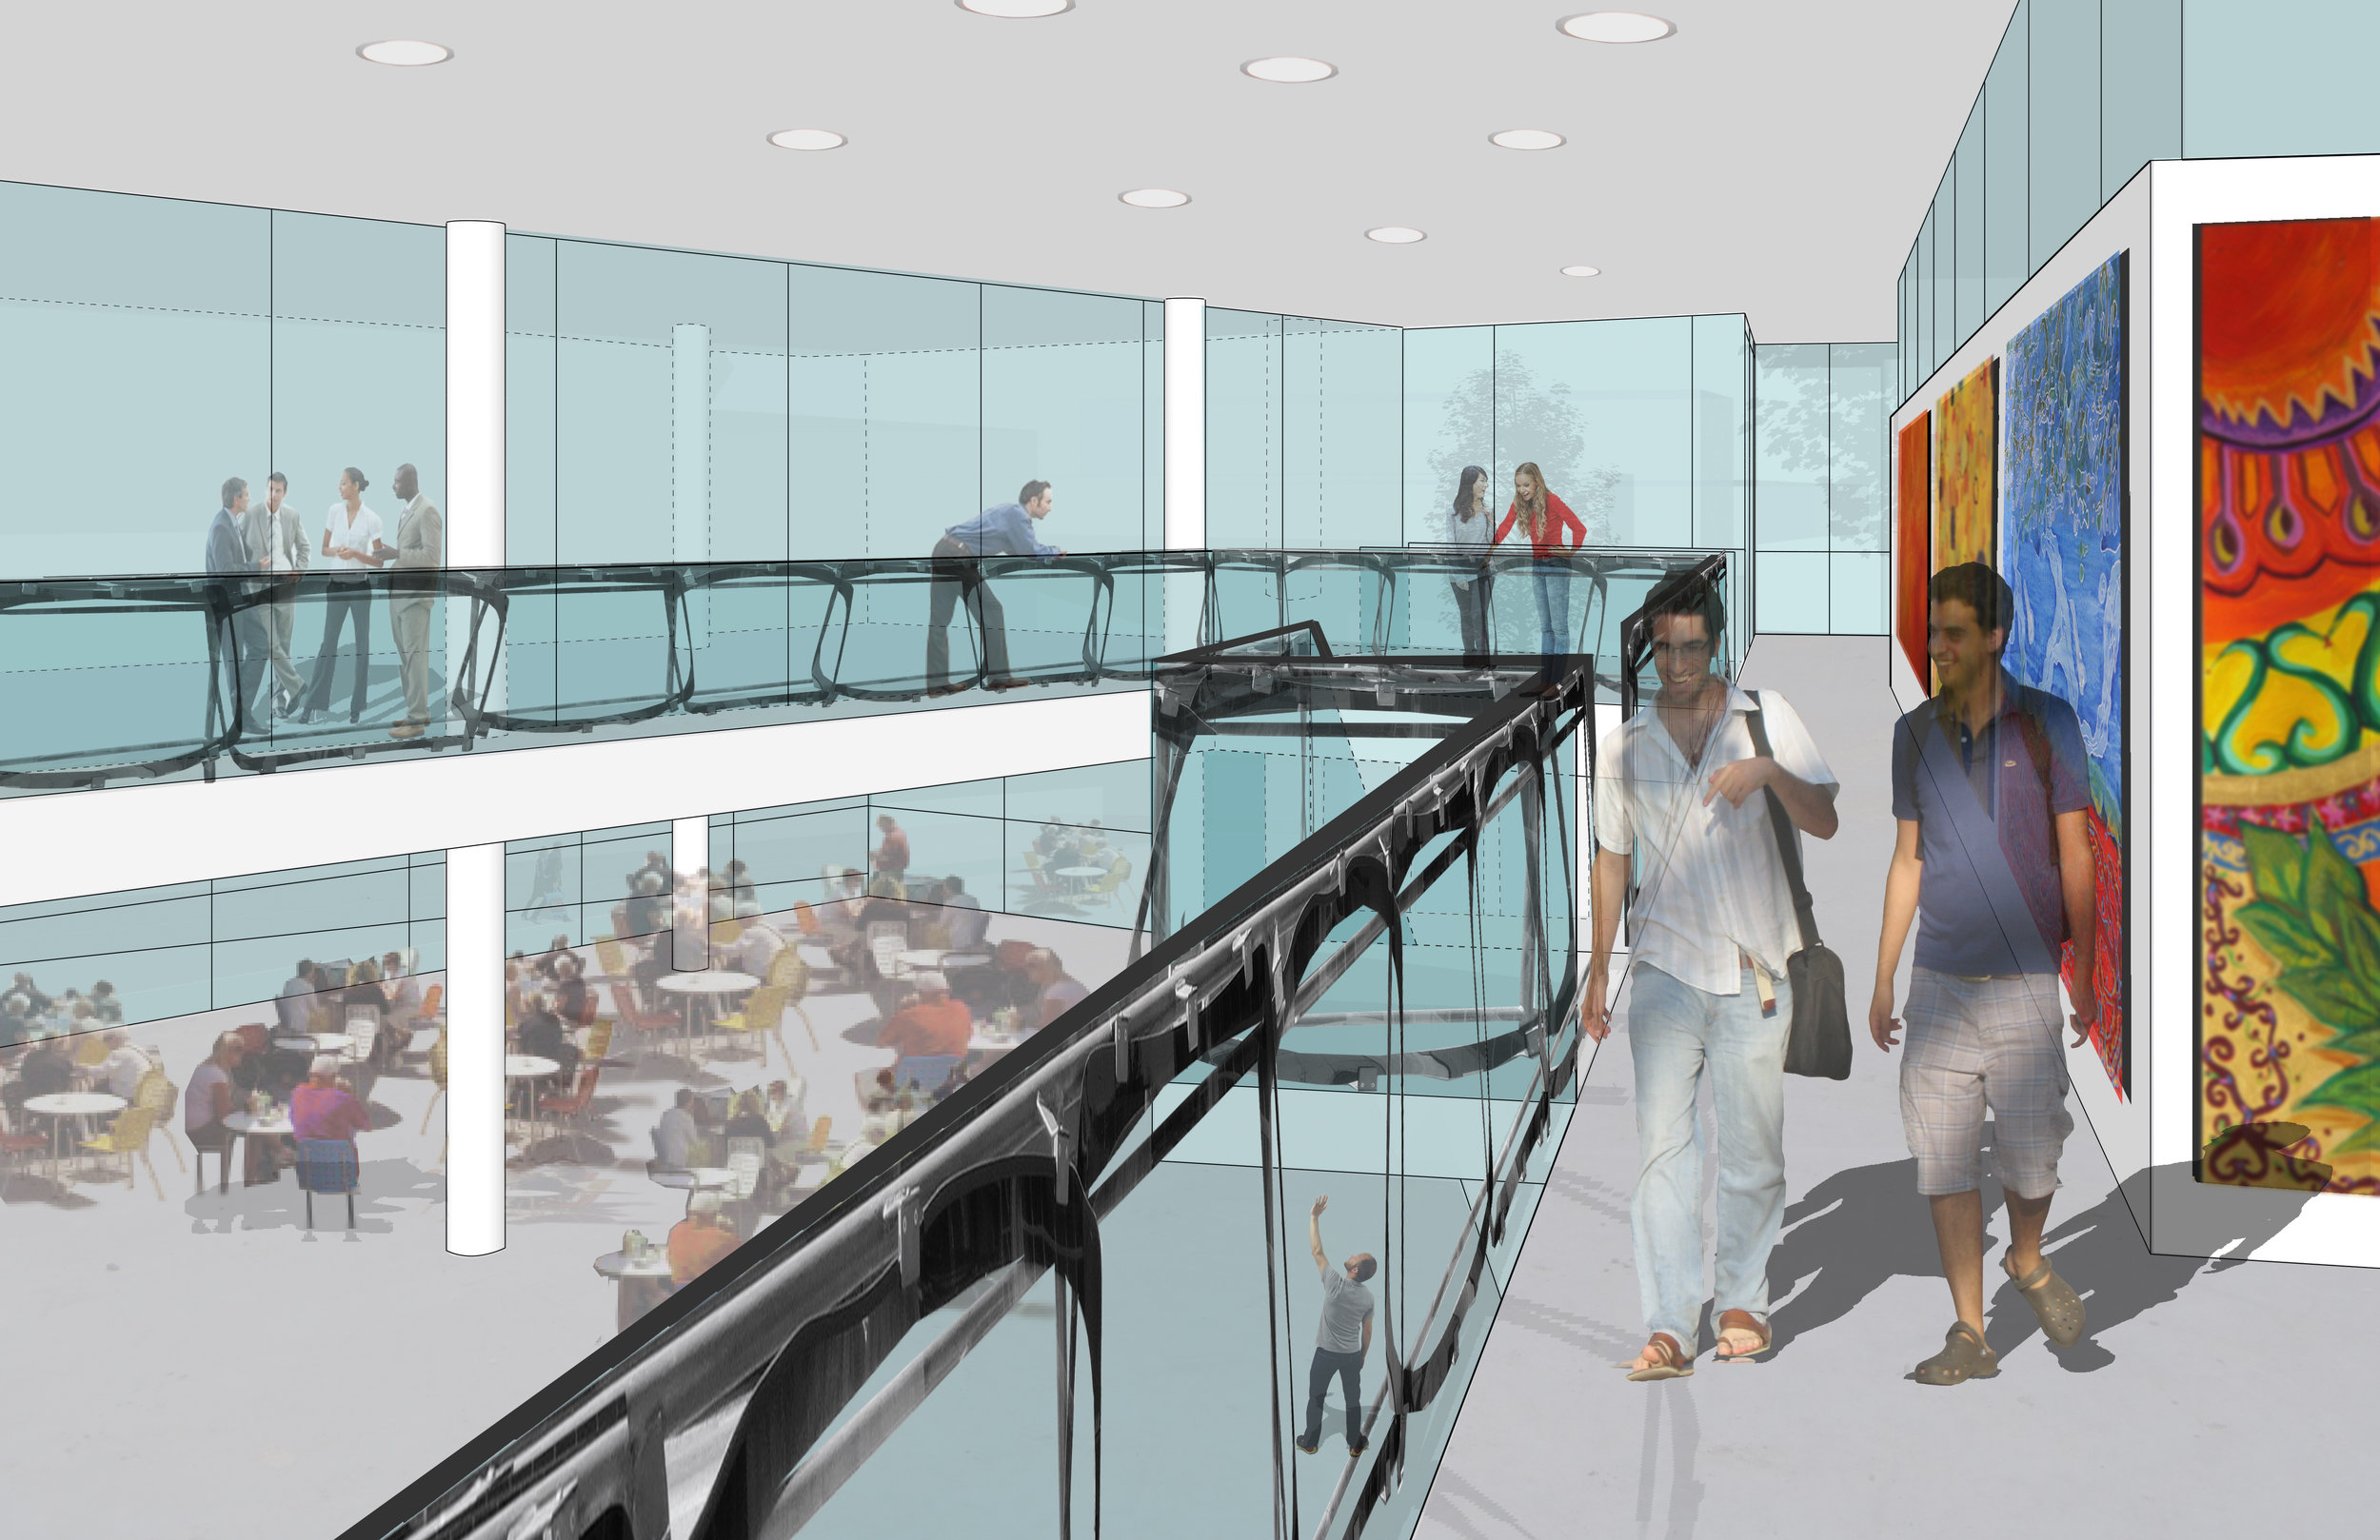 afh-1AB-perspective cafe space-RENDERED.jpg